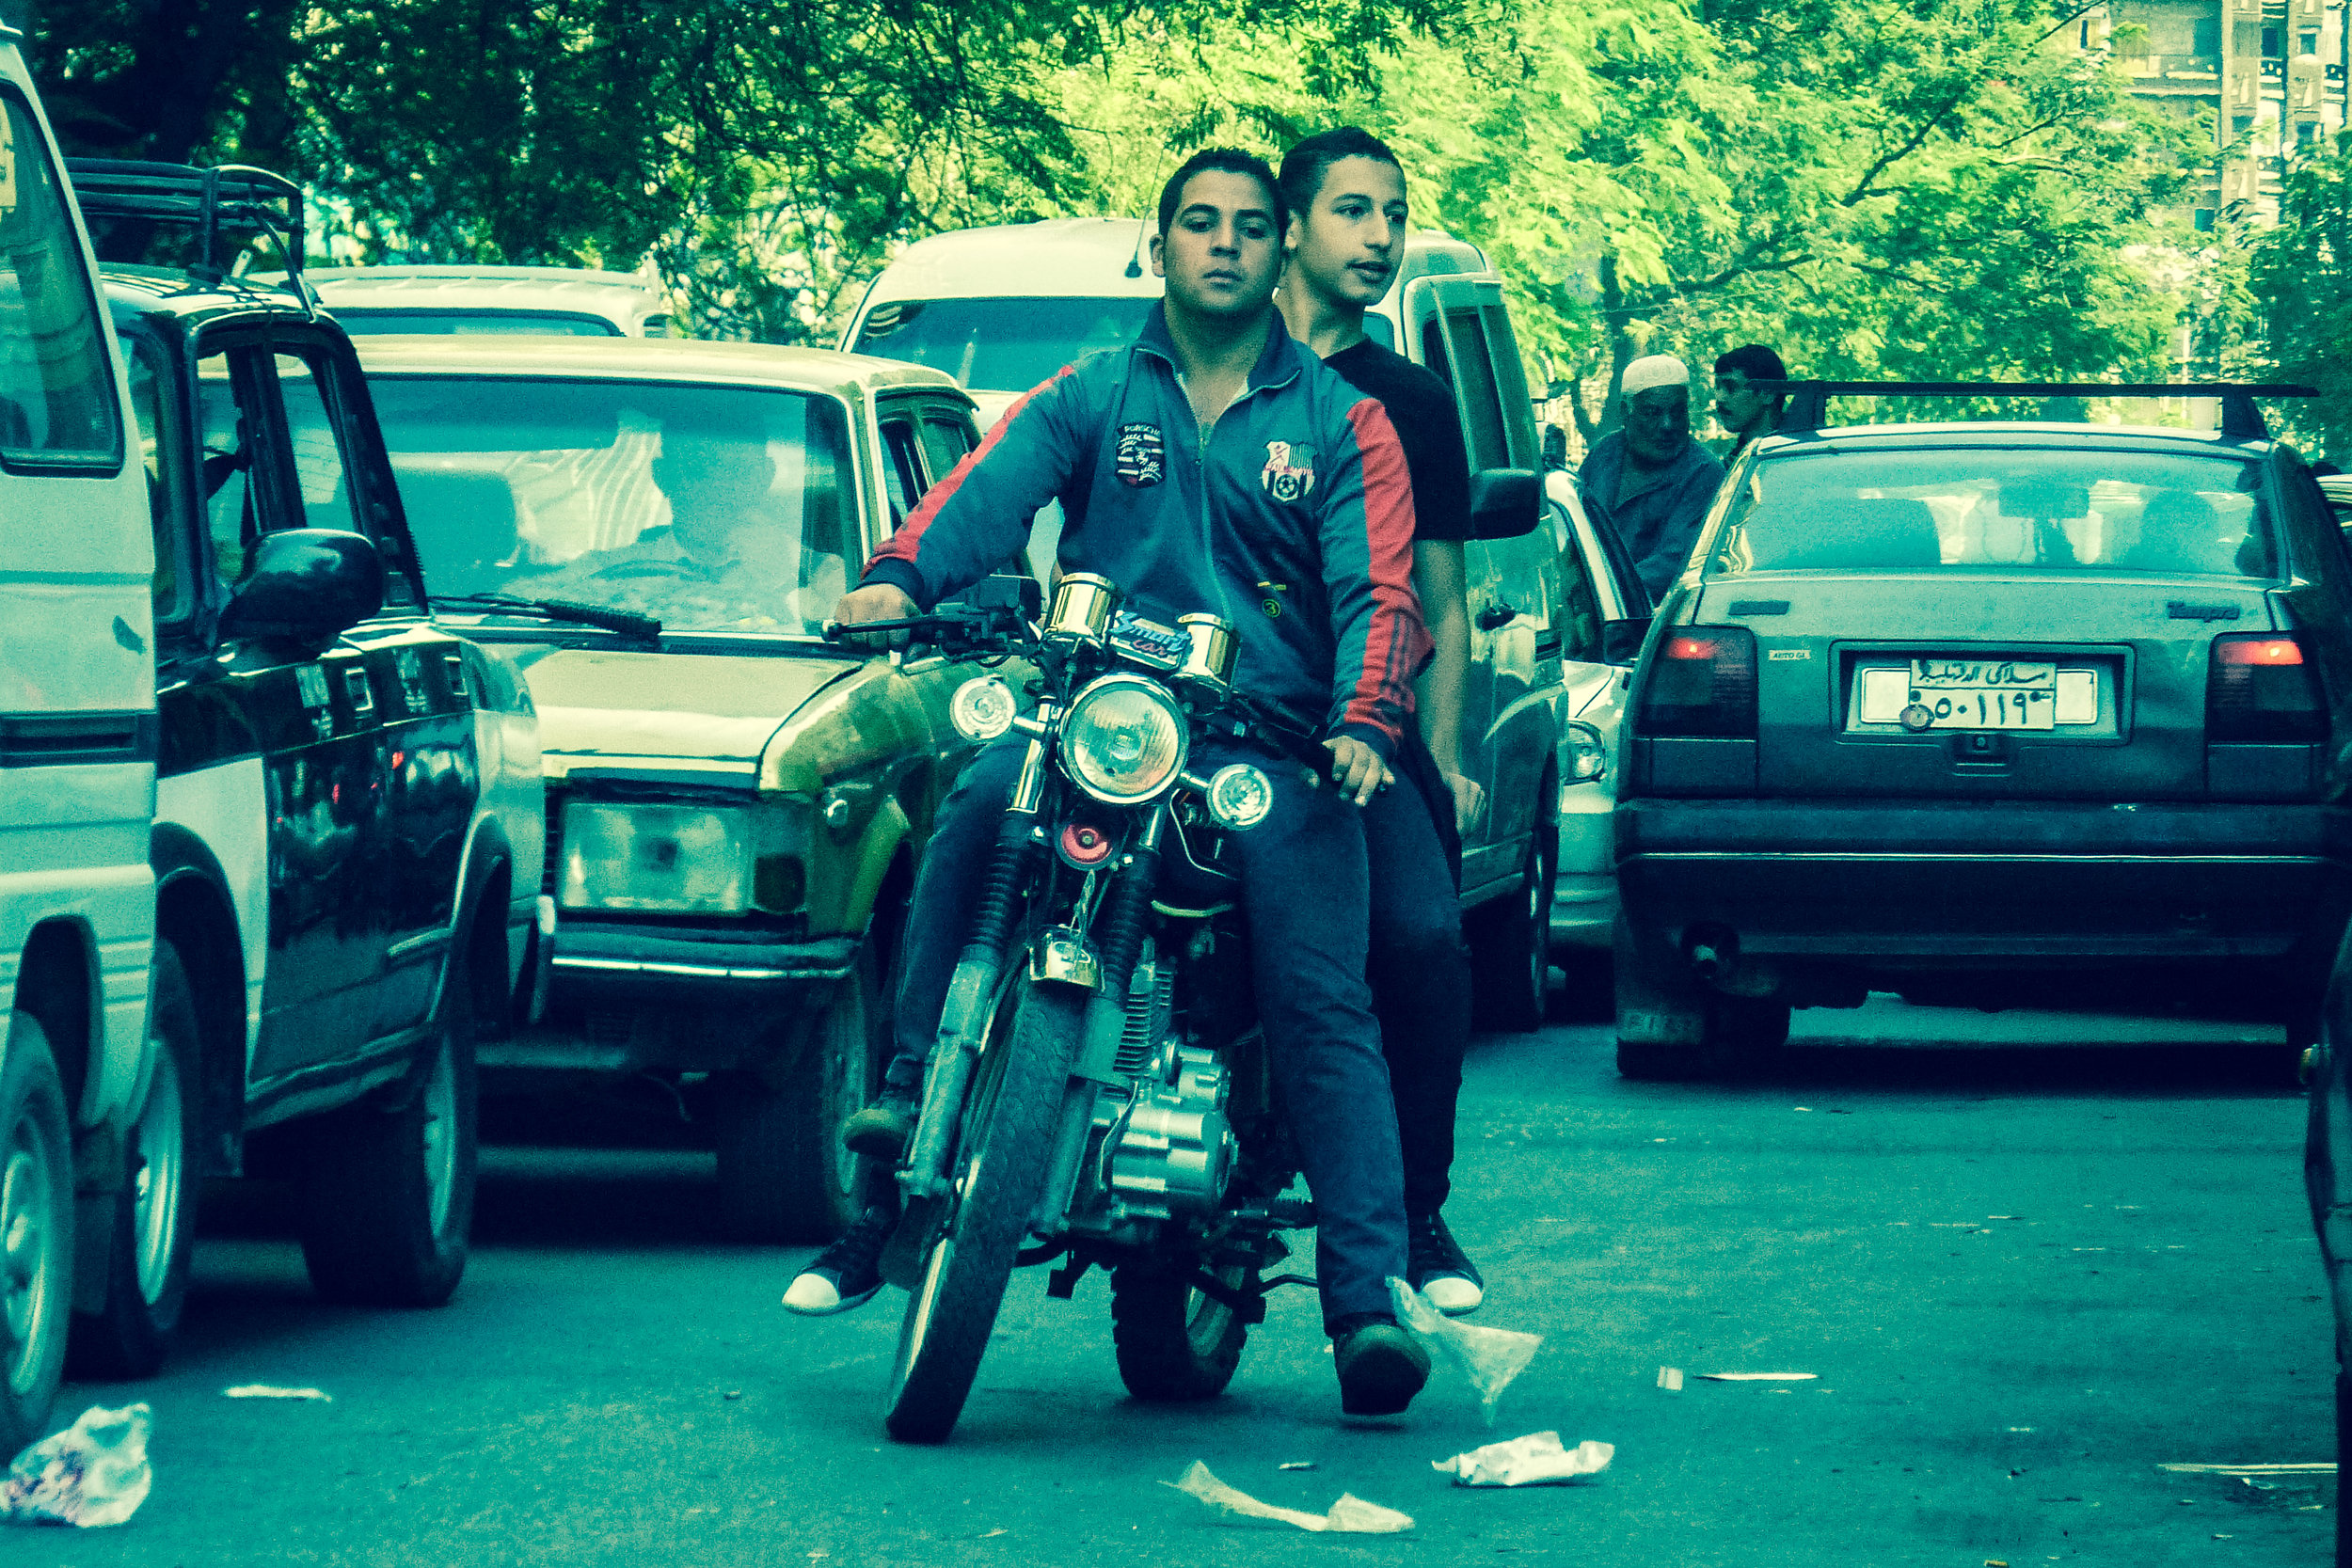 Bikers in Cairo